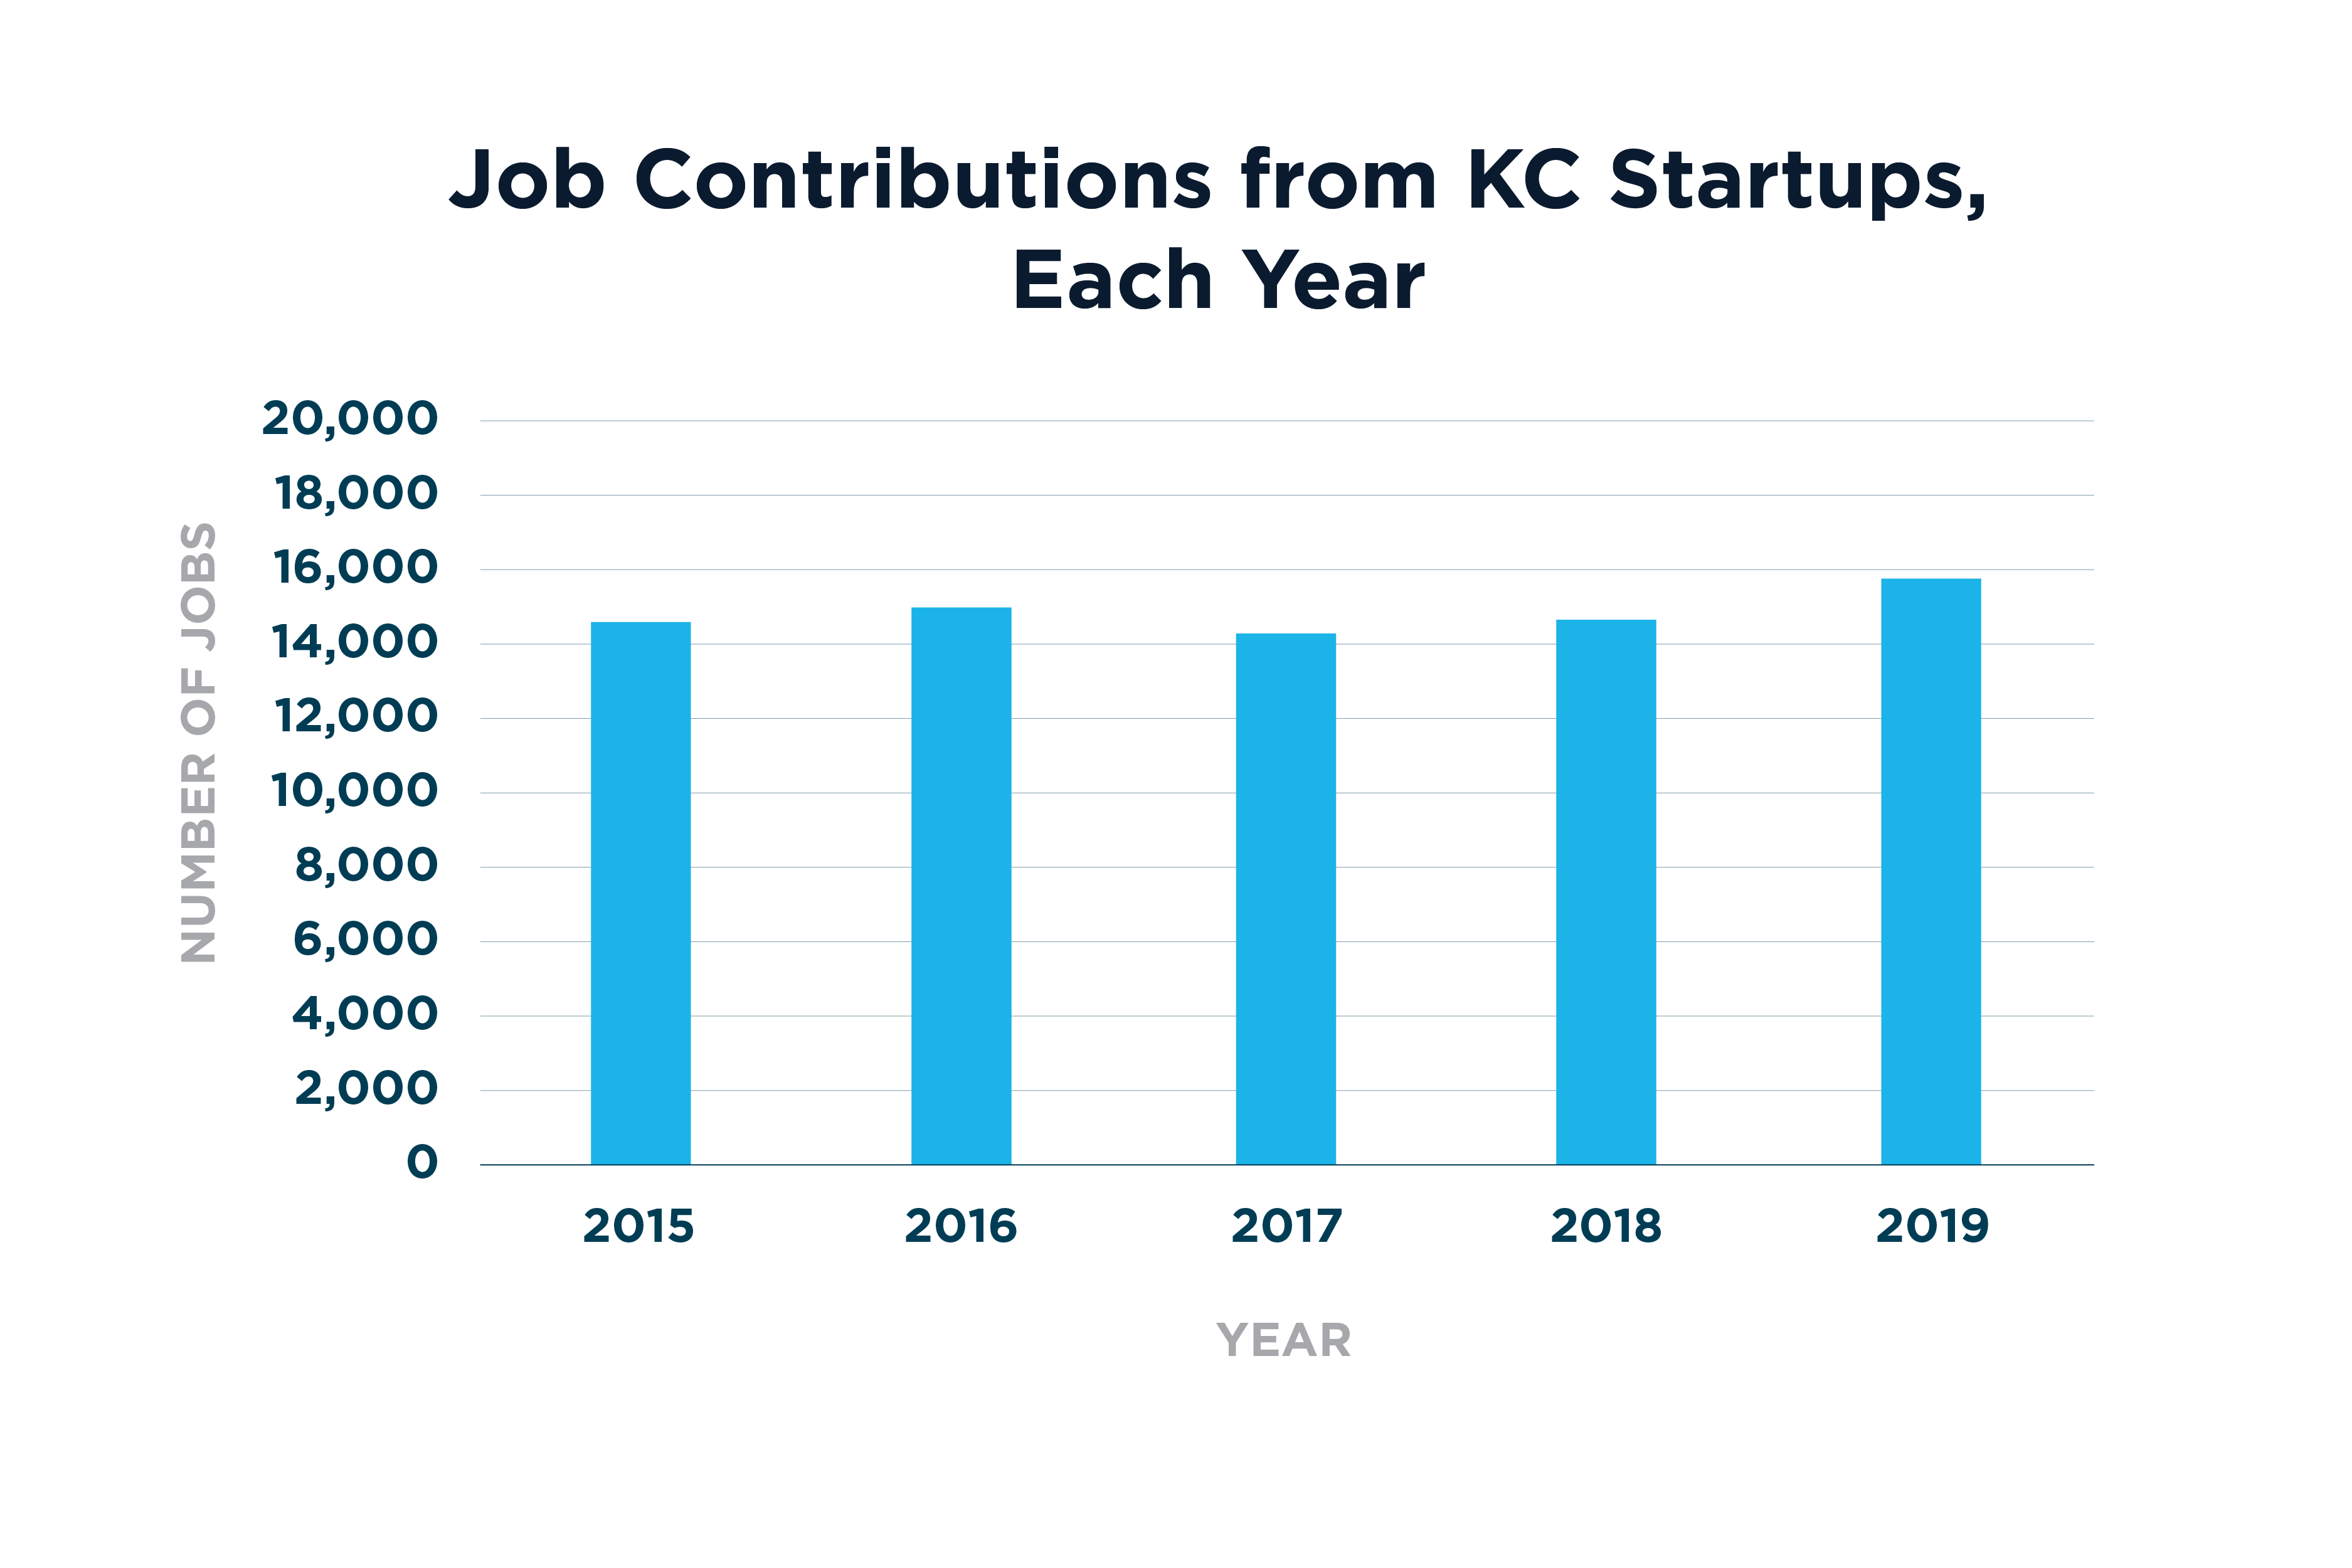 Job Contributions from KC Startups, 2015-2019